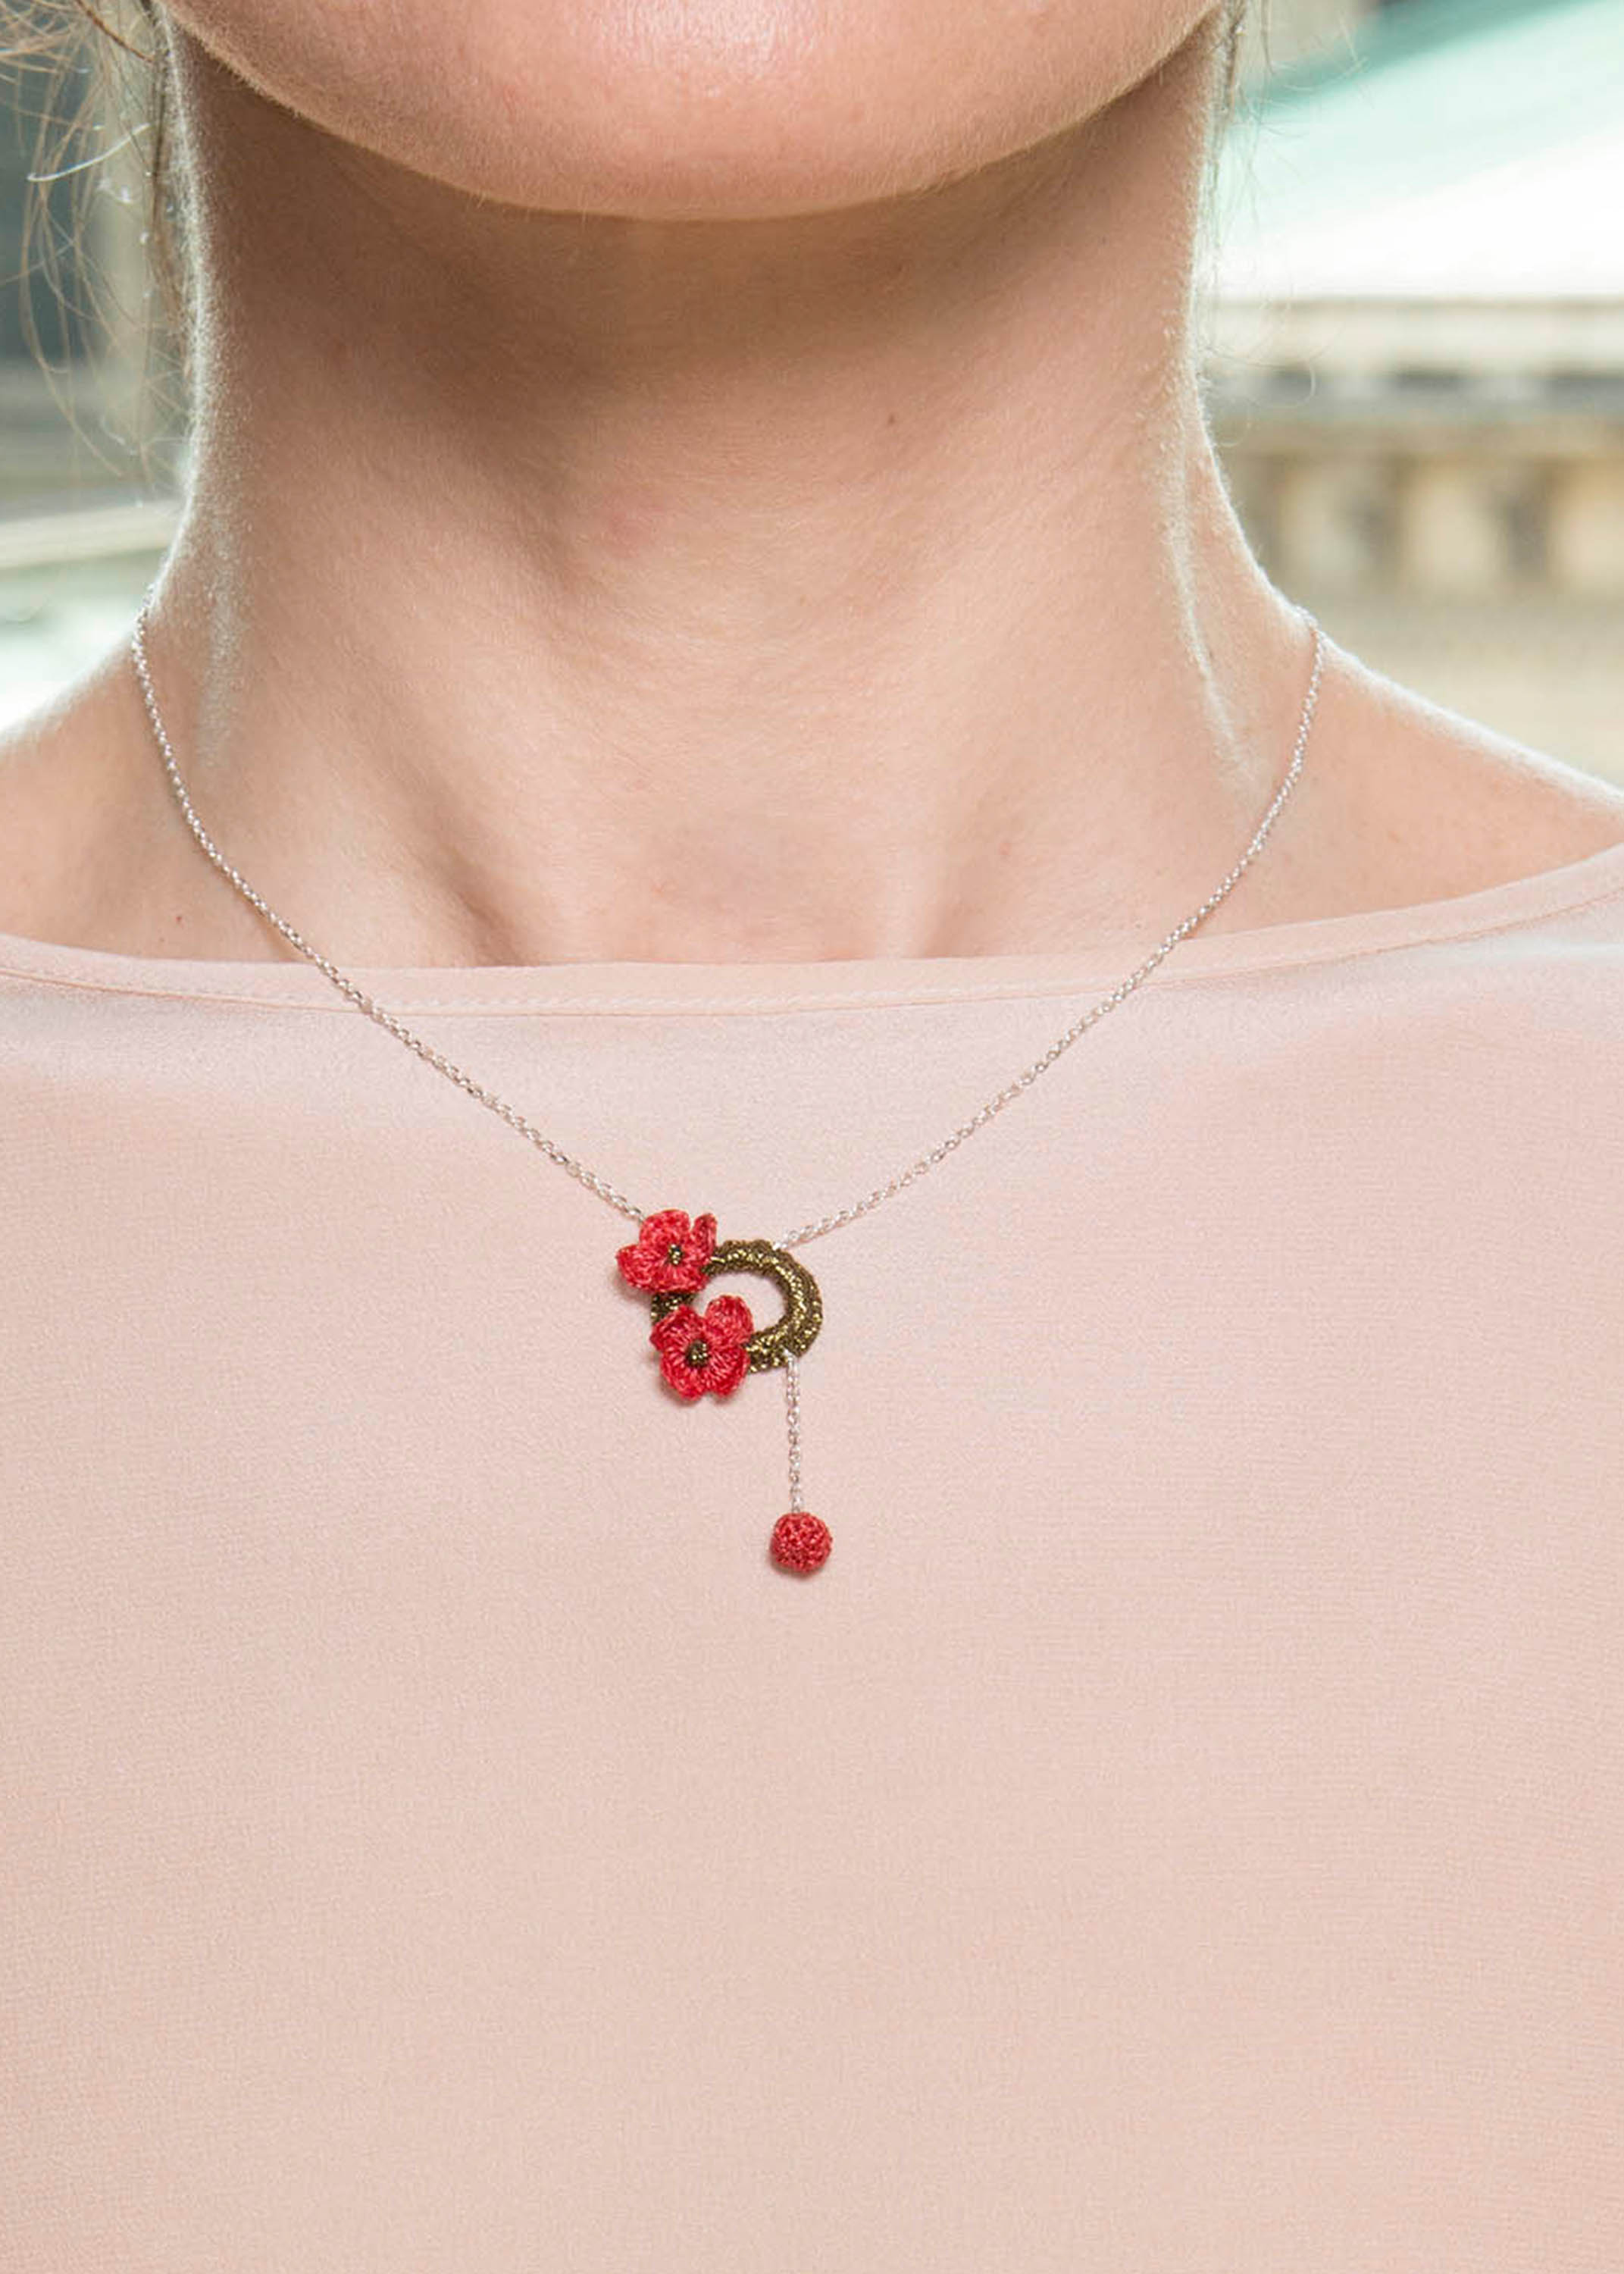 Poetic Flowers Necklace